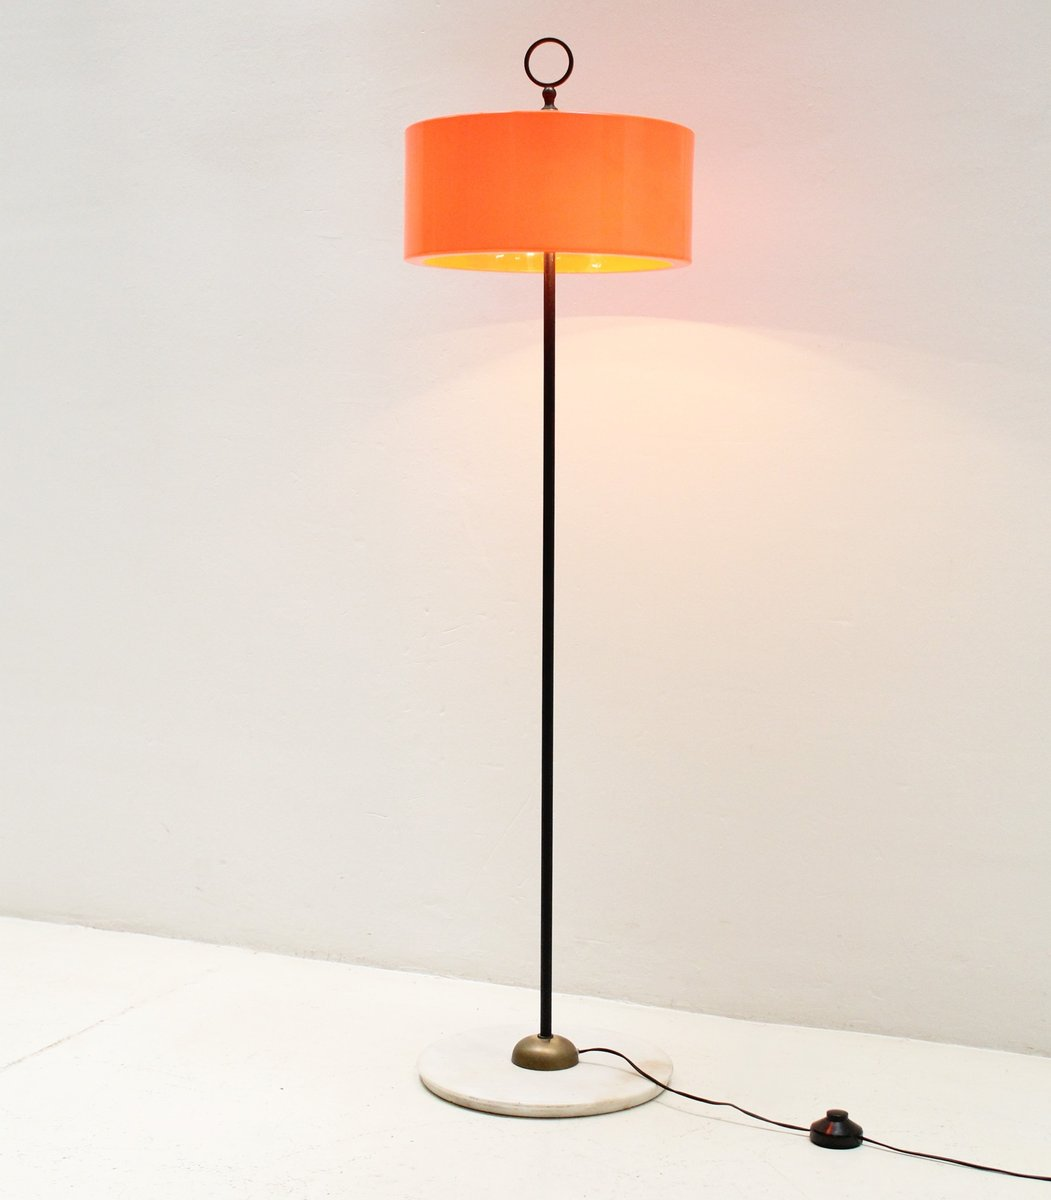 italian floor lamp with orange shade s for sale at pamono - italian floor lamp with orange shade s